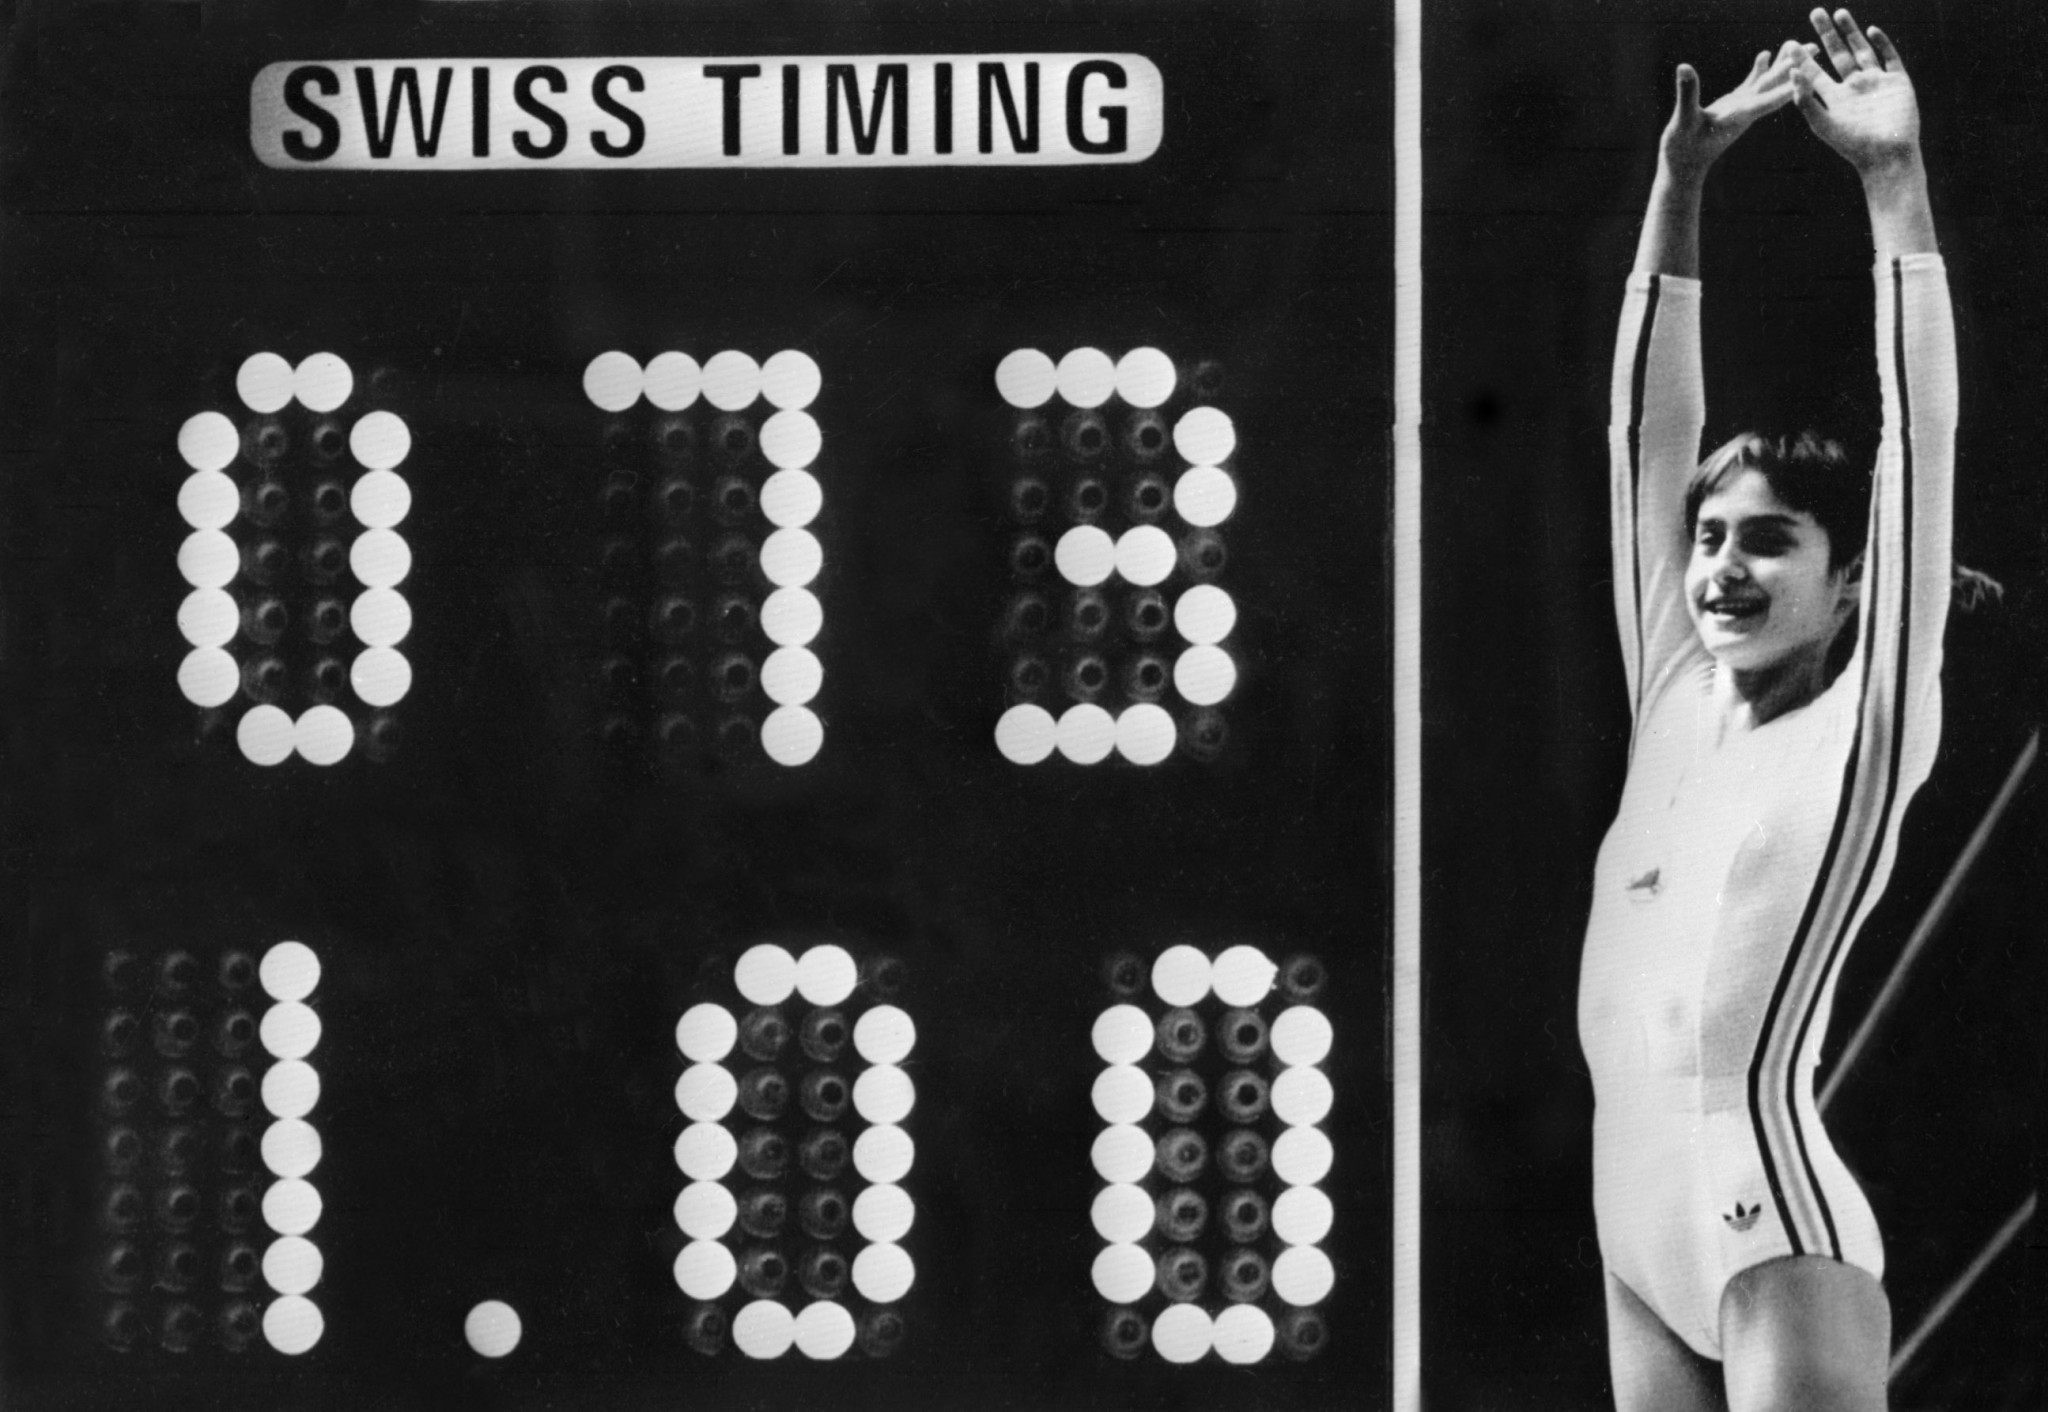 Bruno Grandi oversaw the scrapping of the perfect 10 score, which made a star of Nadia Comăneci ©Getty Images